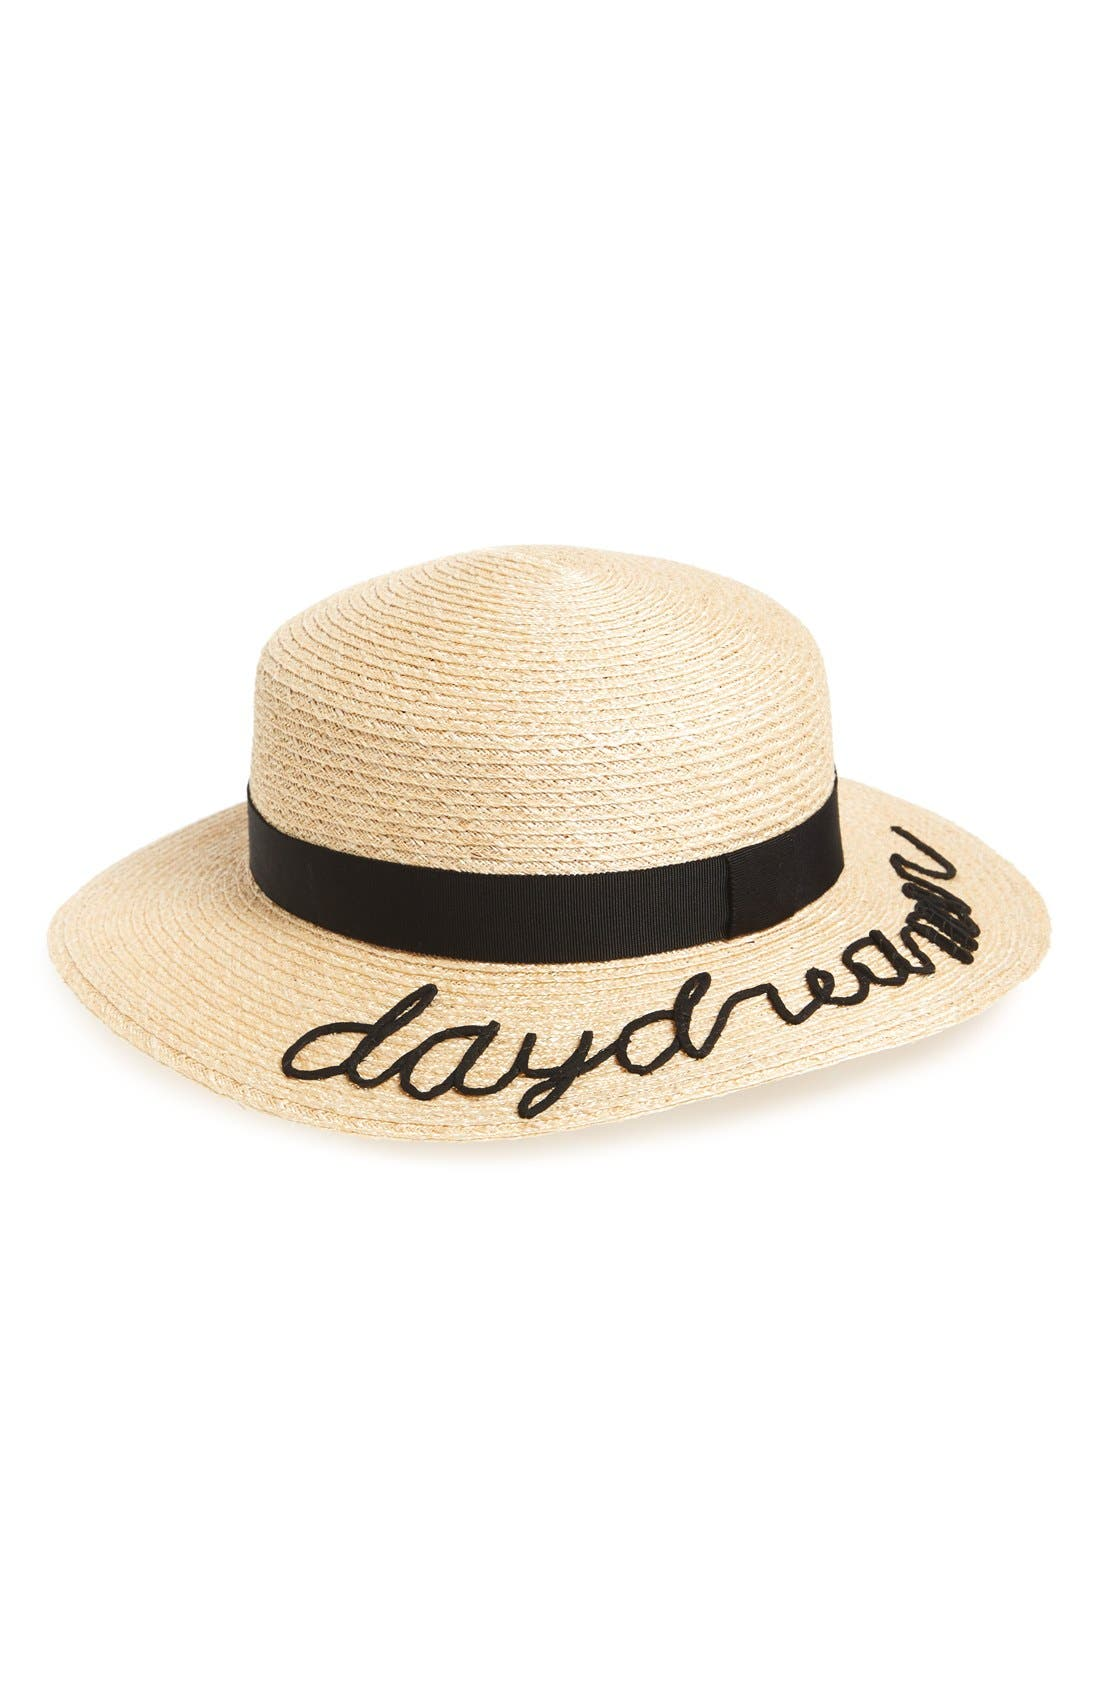 'Daydreamer' Straw Boater Hat,                             Main thumbnail 1, color,                             Natural